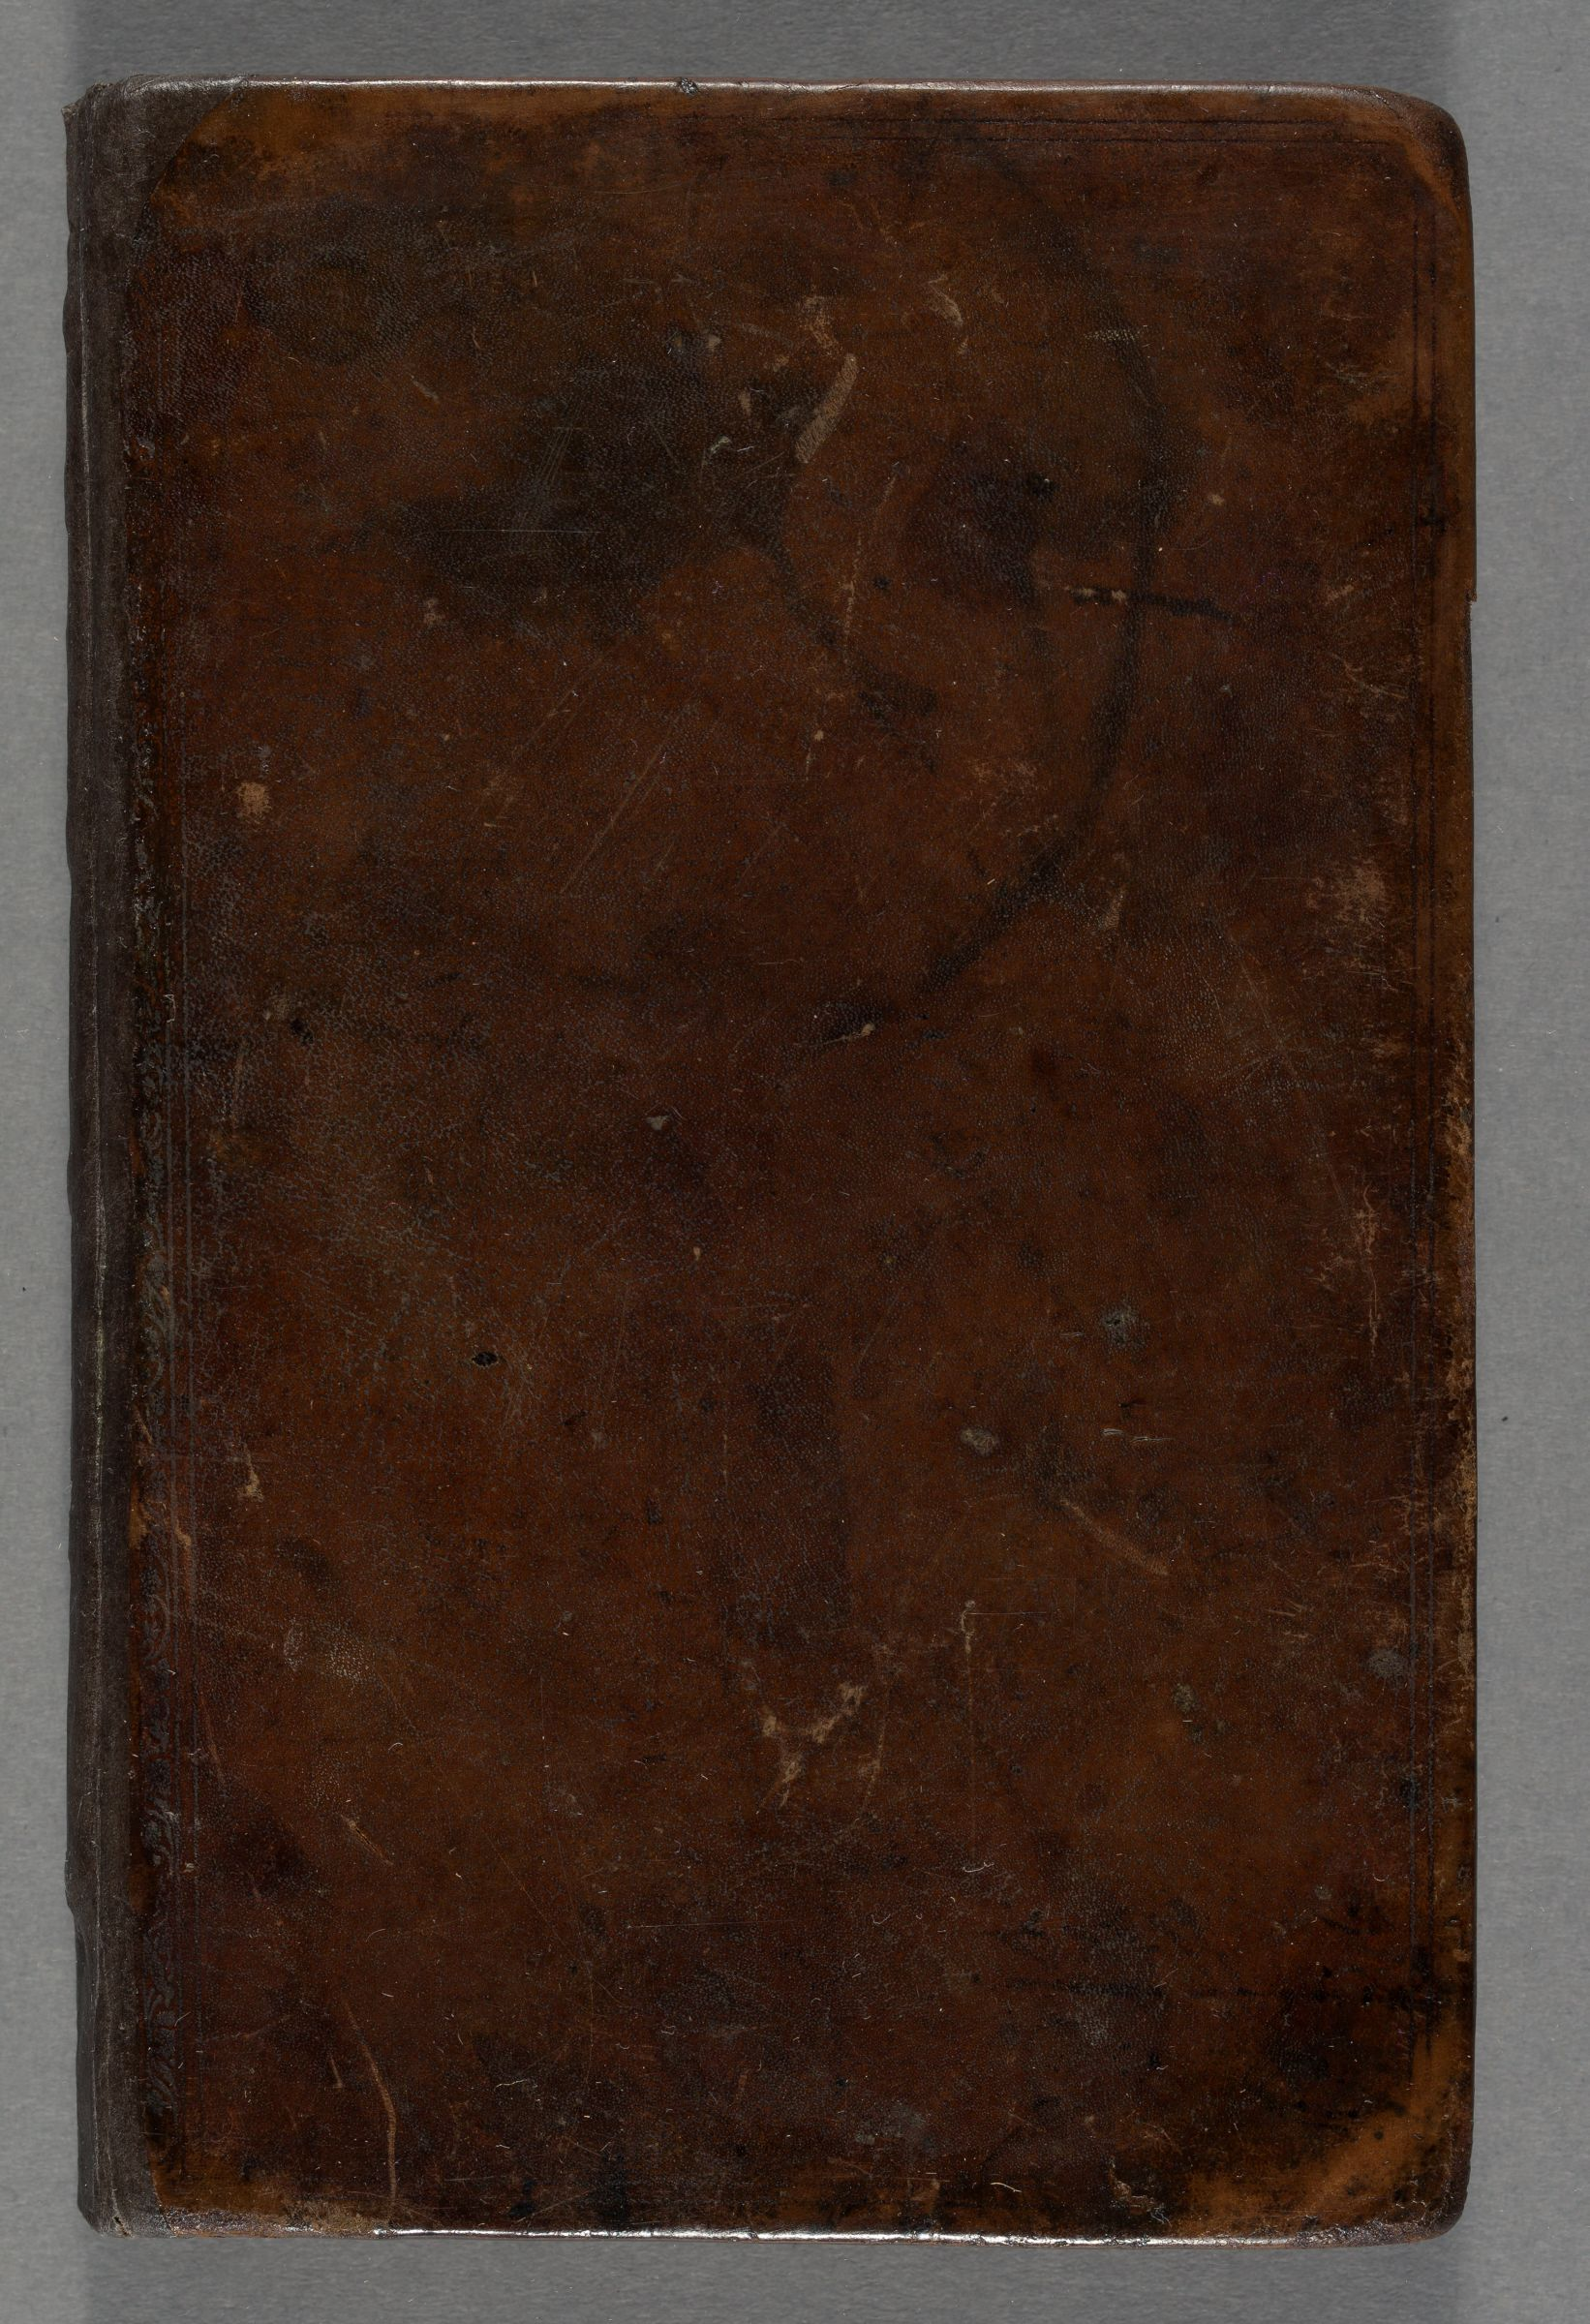 Commonplace book of Jonathan Belcher, 1725-1727